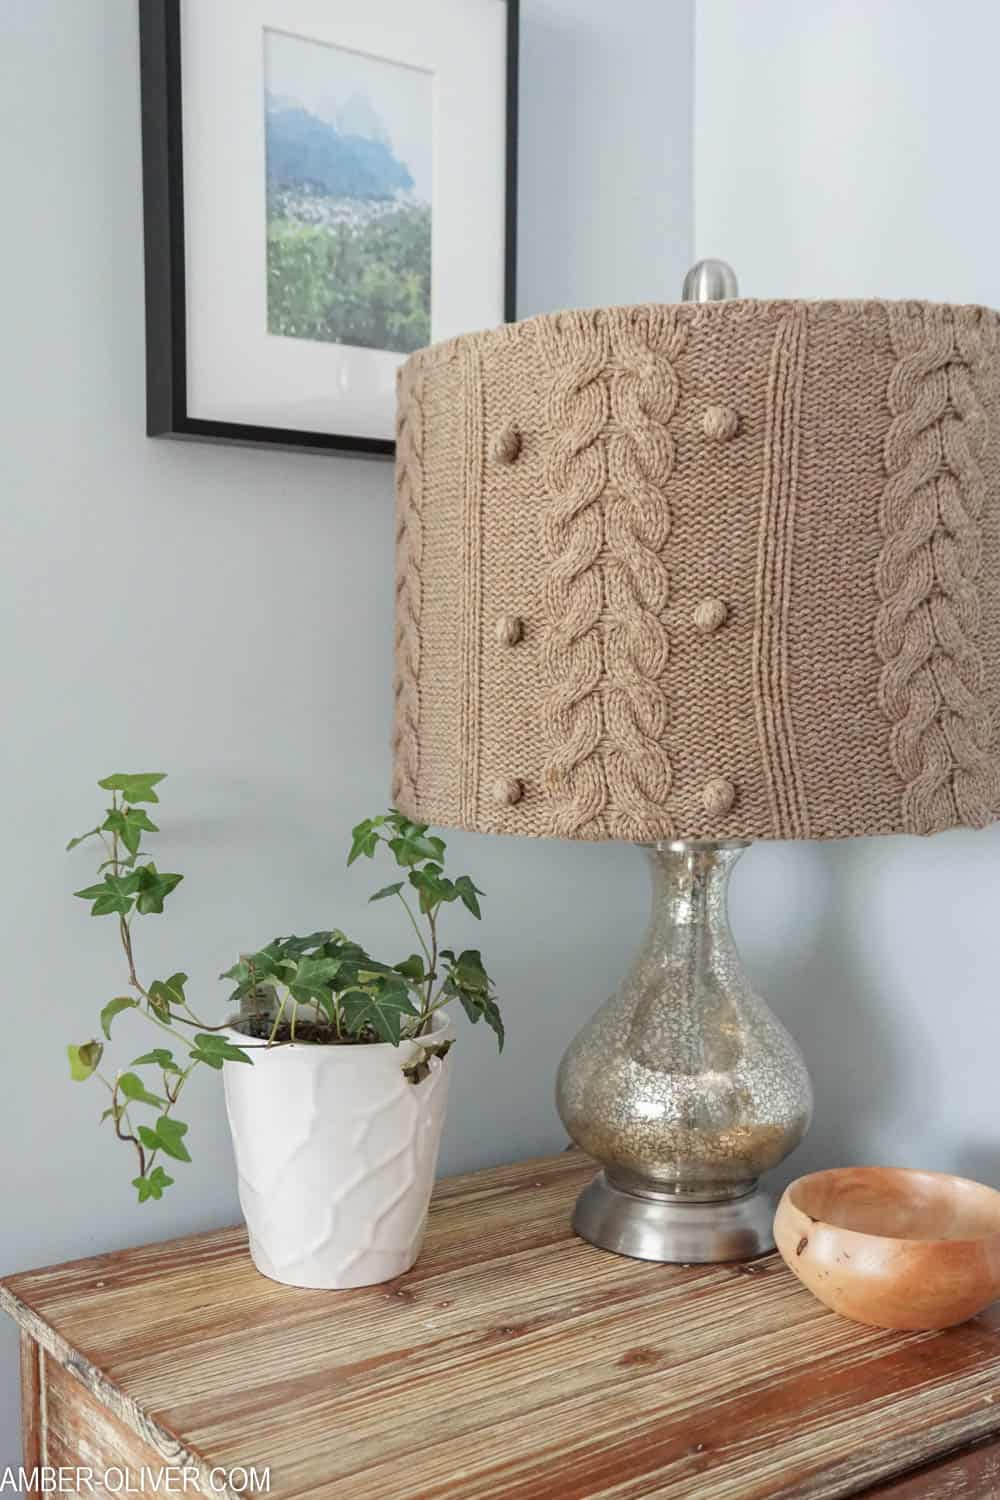 Sweater to cute lampshade